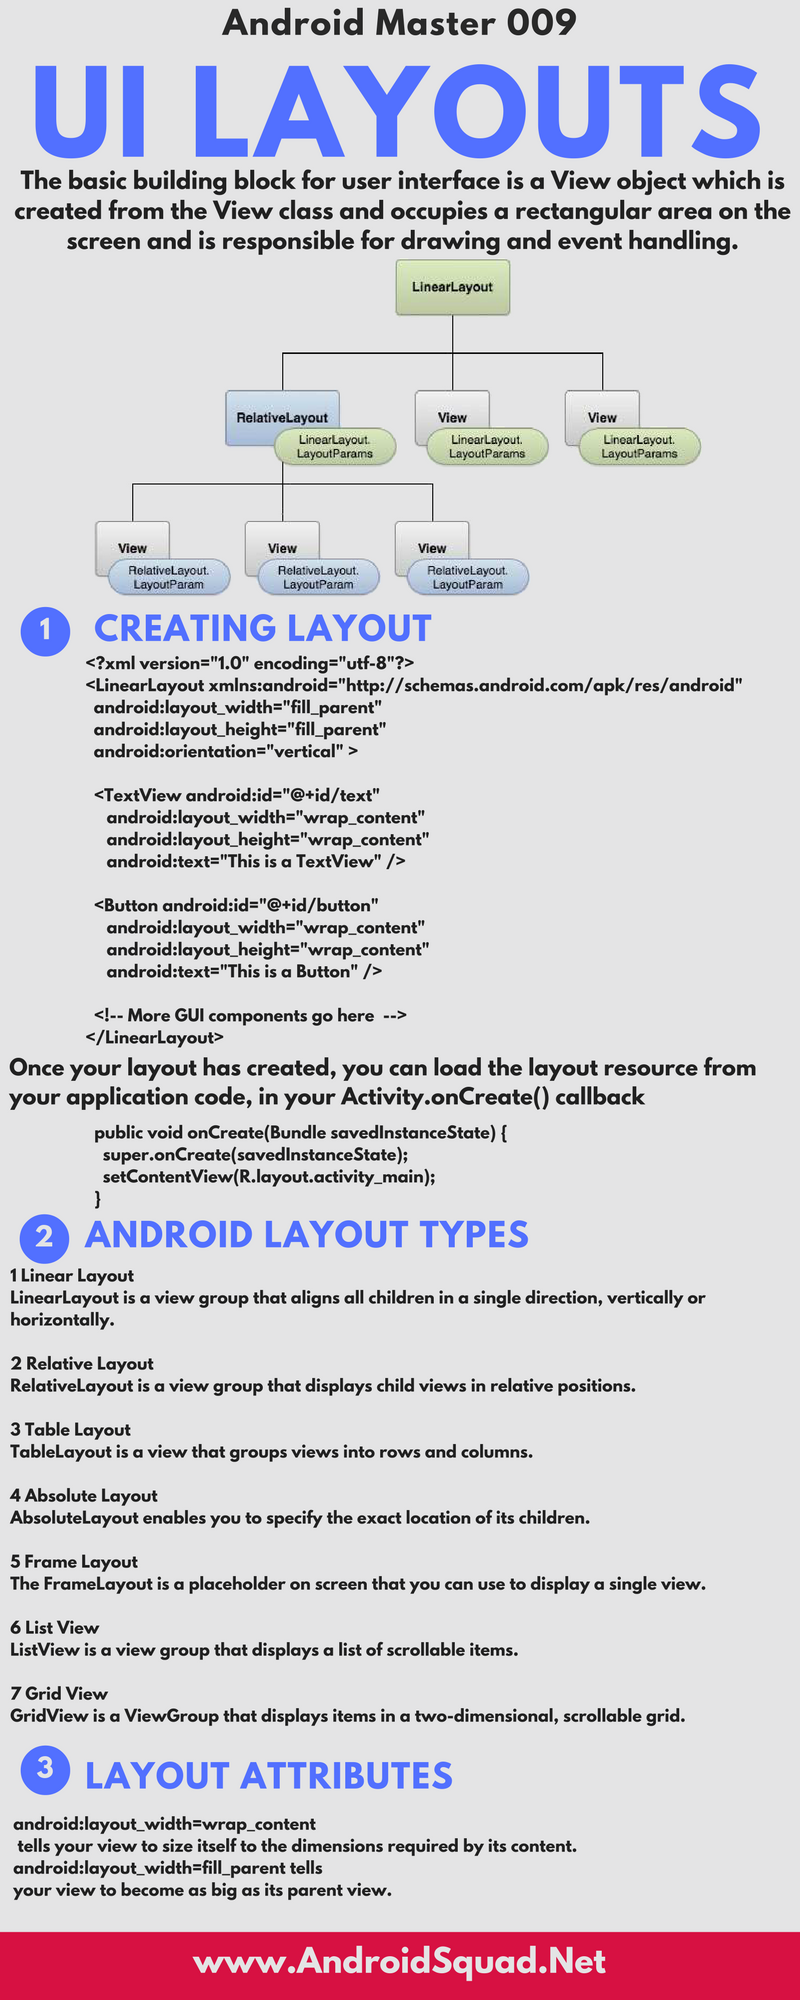 Android - UI Layouts Learn Android UI Layouts Android Master 009